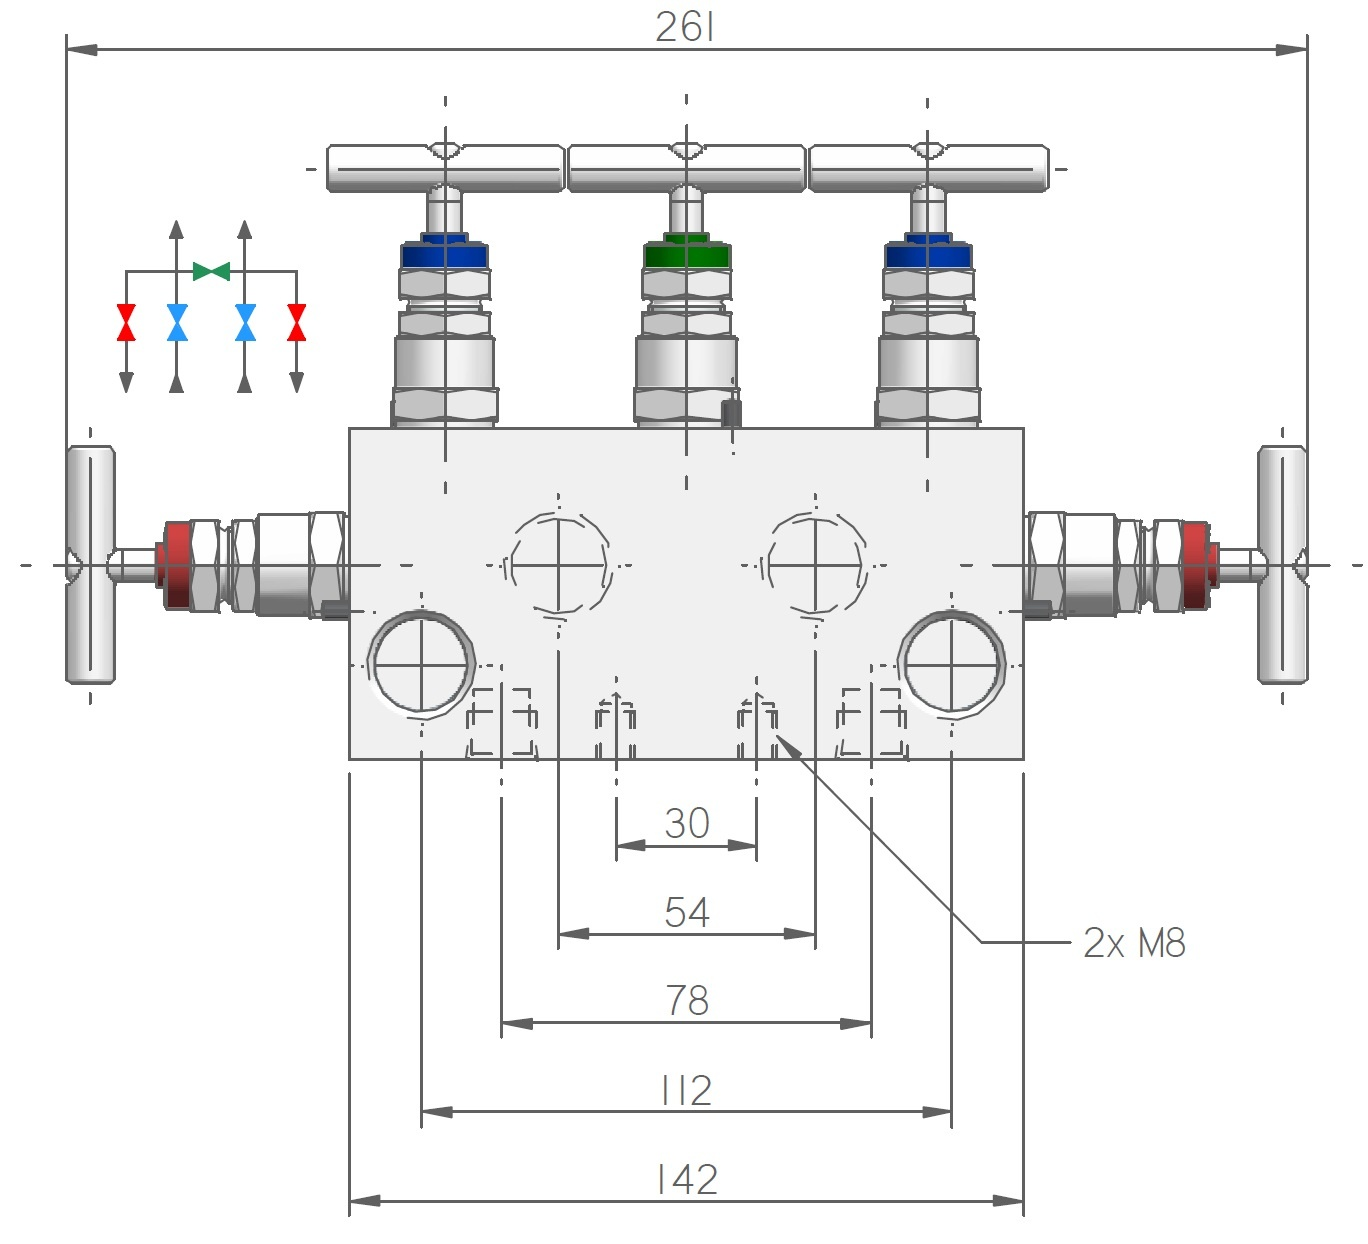 5-way Manifold for differential press. instrument, M54 serie